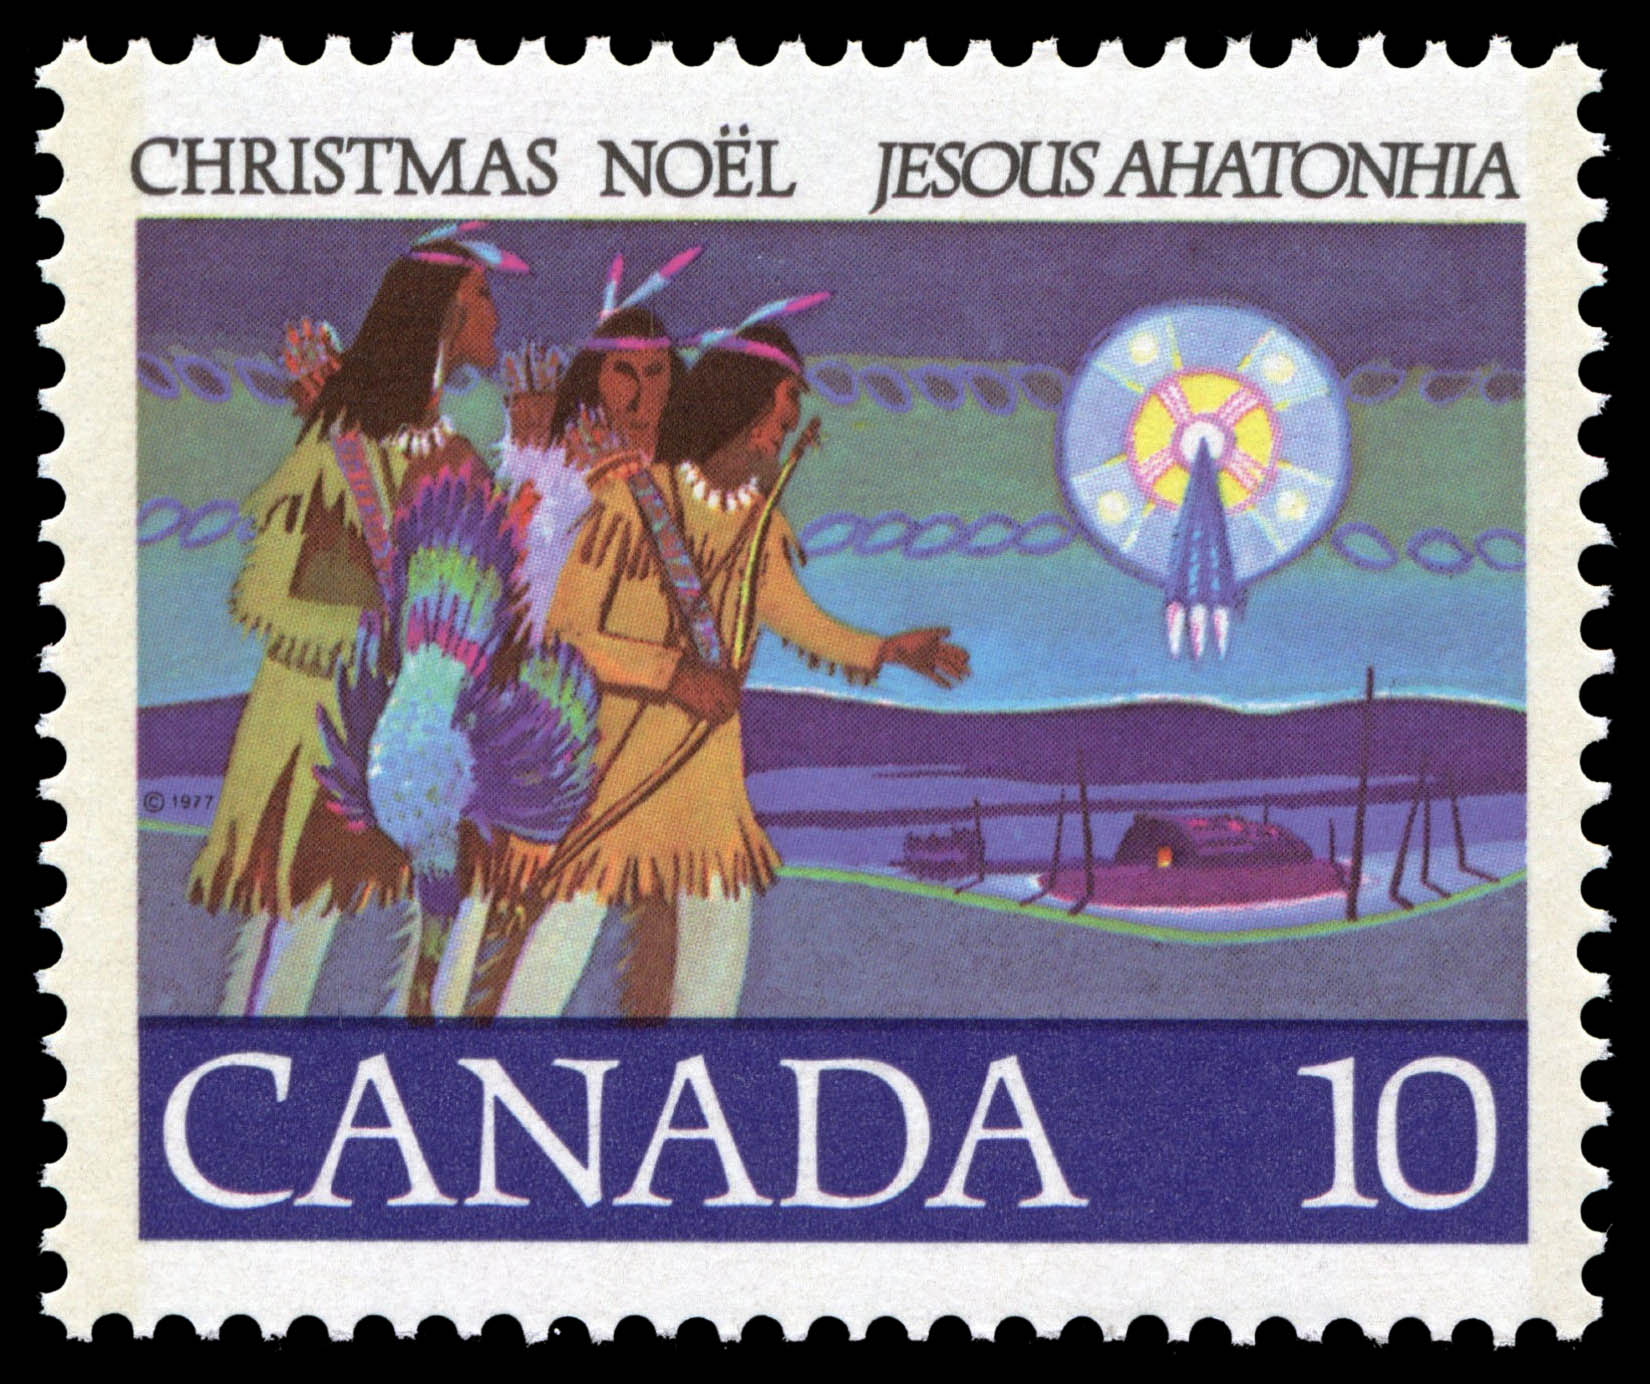 Hunter Braves Canada Postage Stamp | Christmas, Jesous Ahatonhia